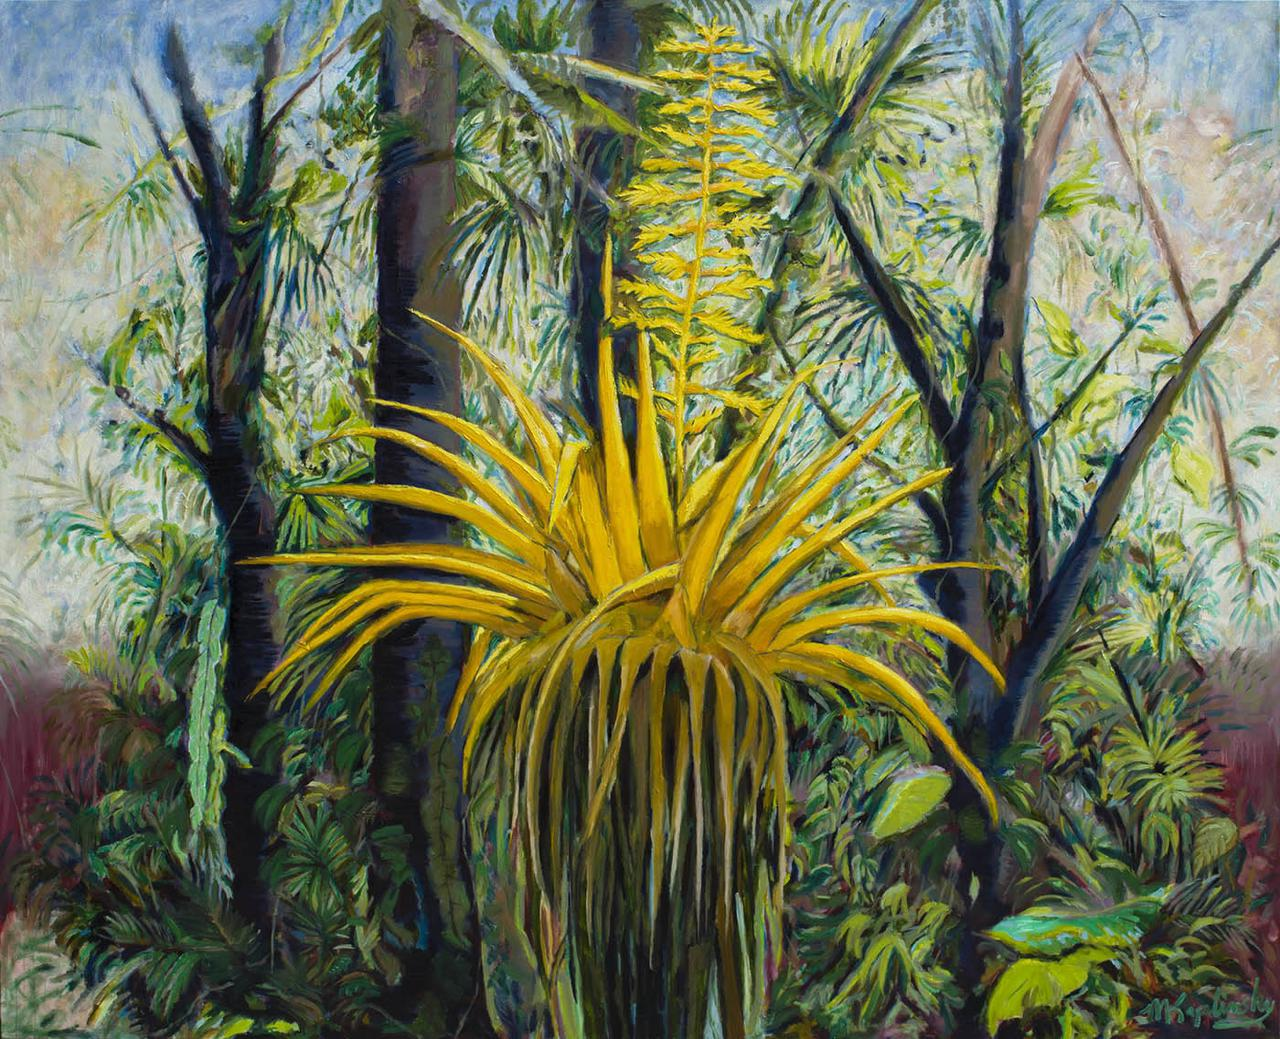 portfolio/Sunrise Costa Rica - 60x72 oil on canvas by Matt Kaplinsky.jpg